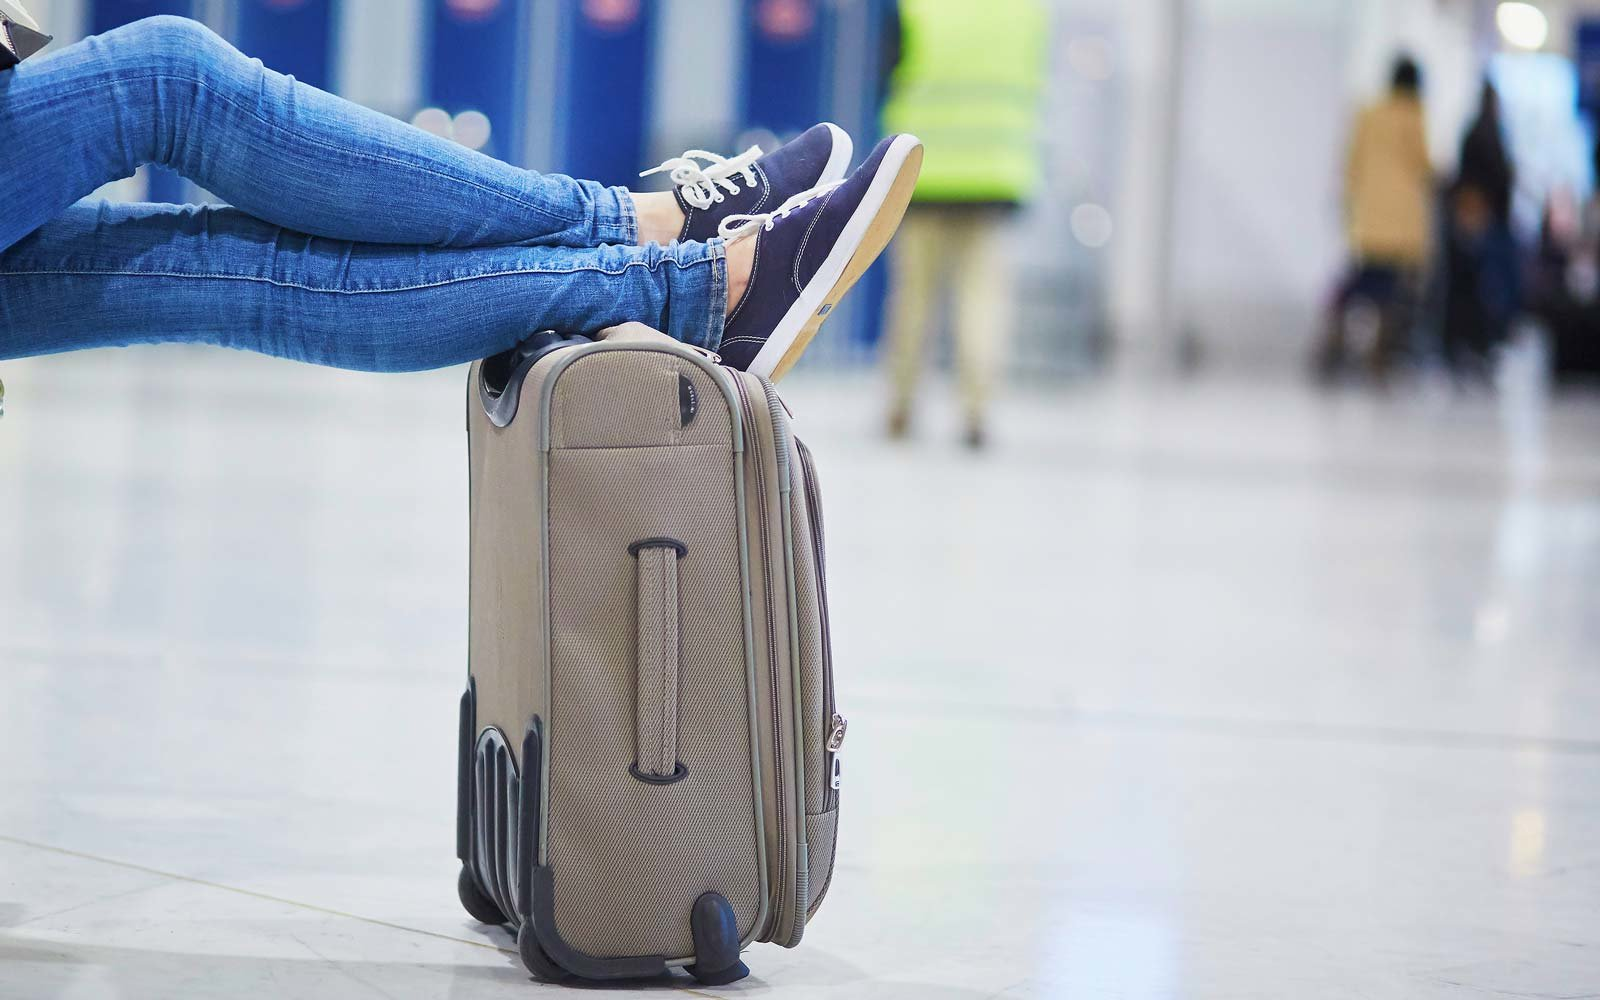 I Traveled Around the World With Only a Carry-on Suitcase, and These Are the Things I Wish I Hadn't Packed